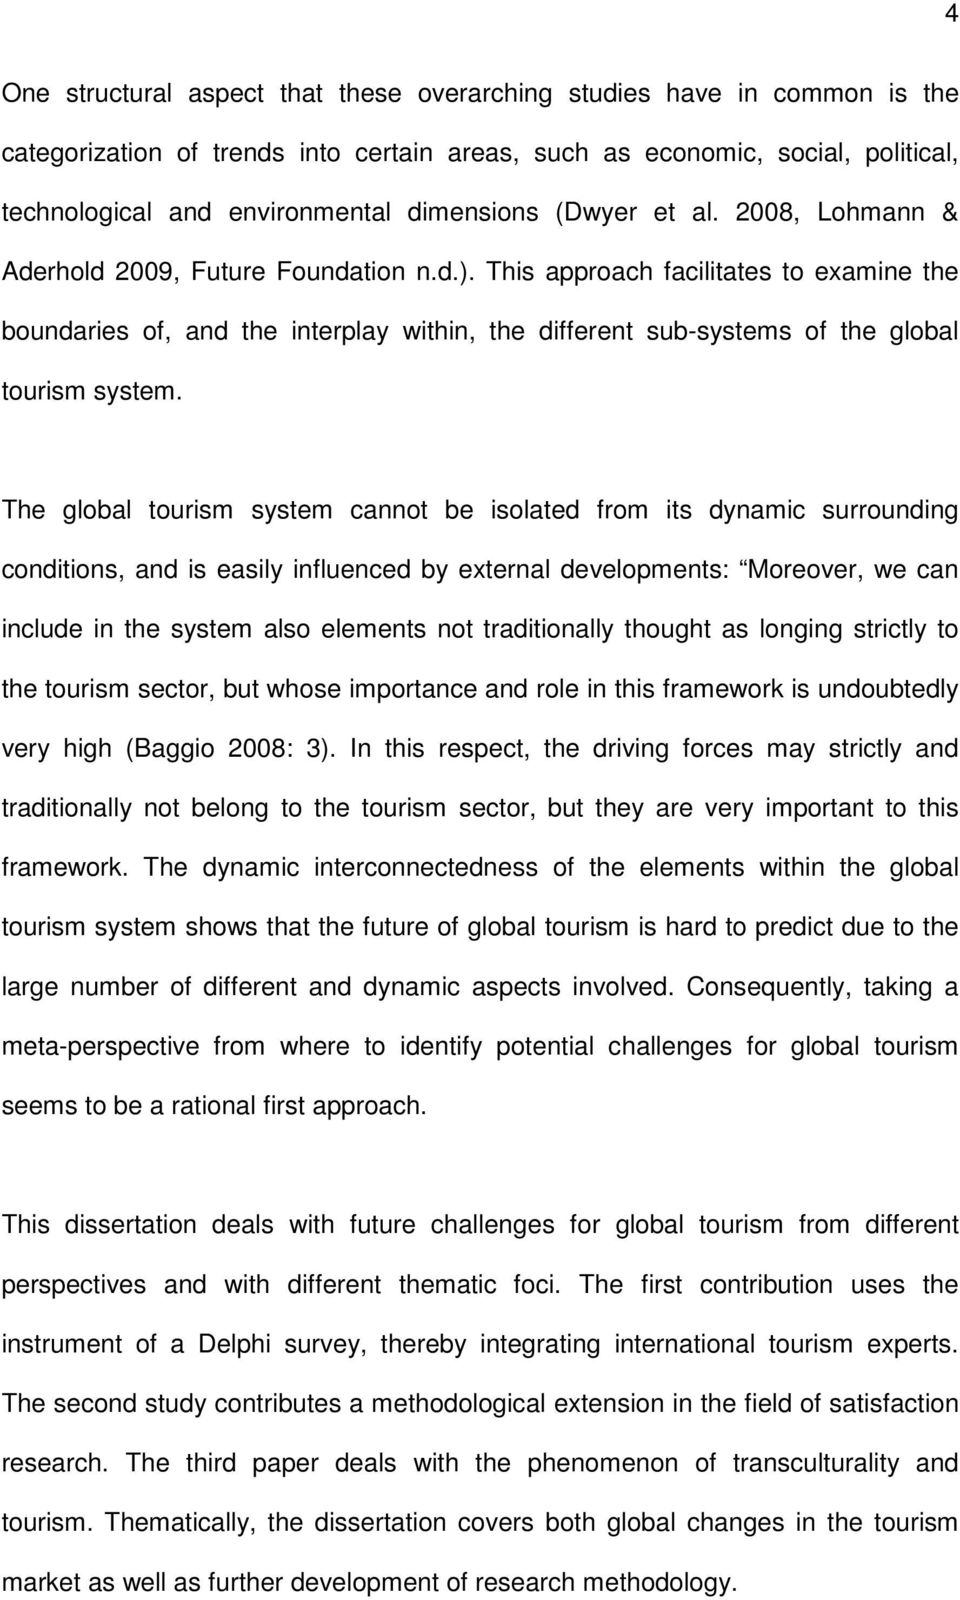 This approach facilitates to examine the boundaries of, and the interplay within, the different sub-systems of the global tourism system.